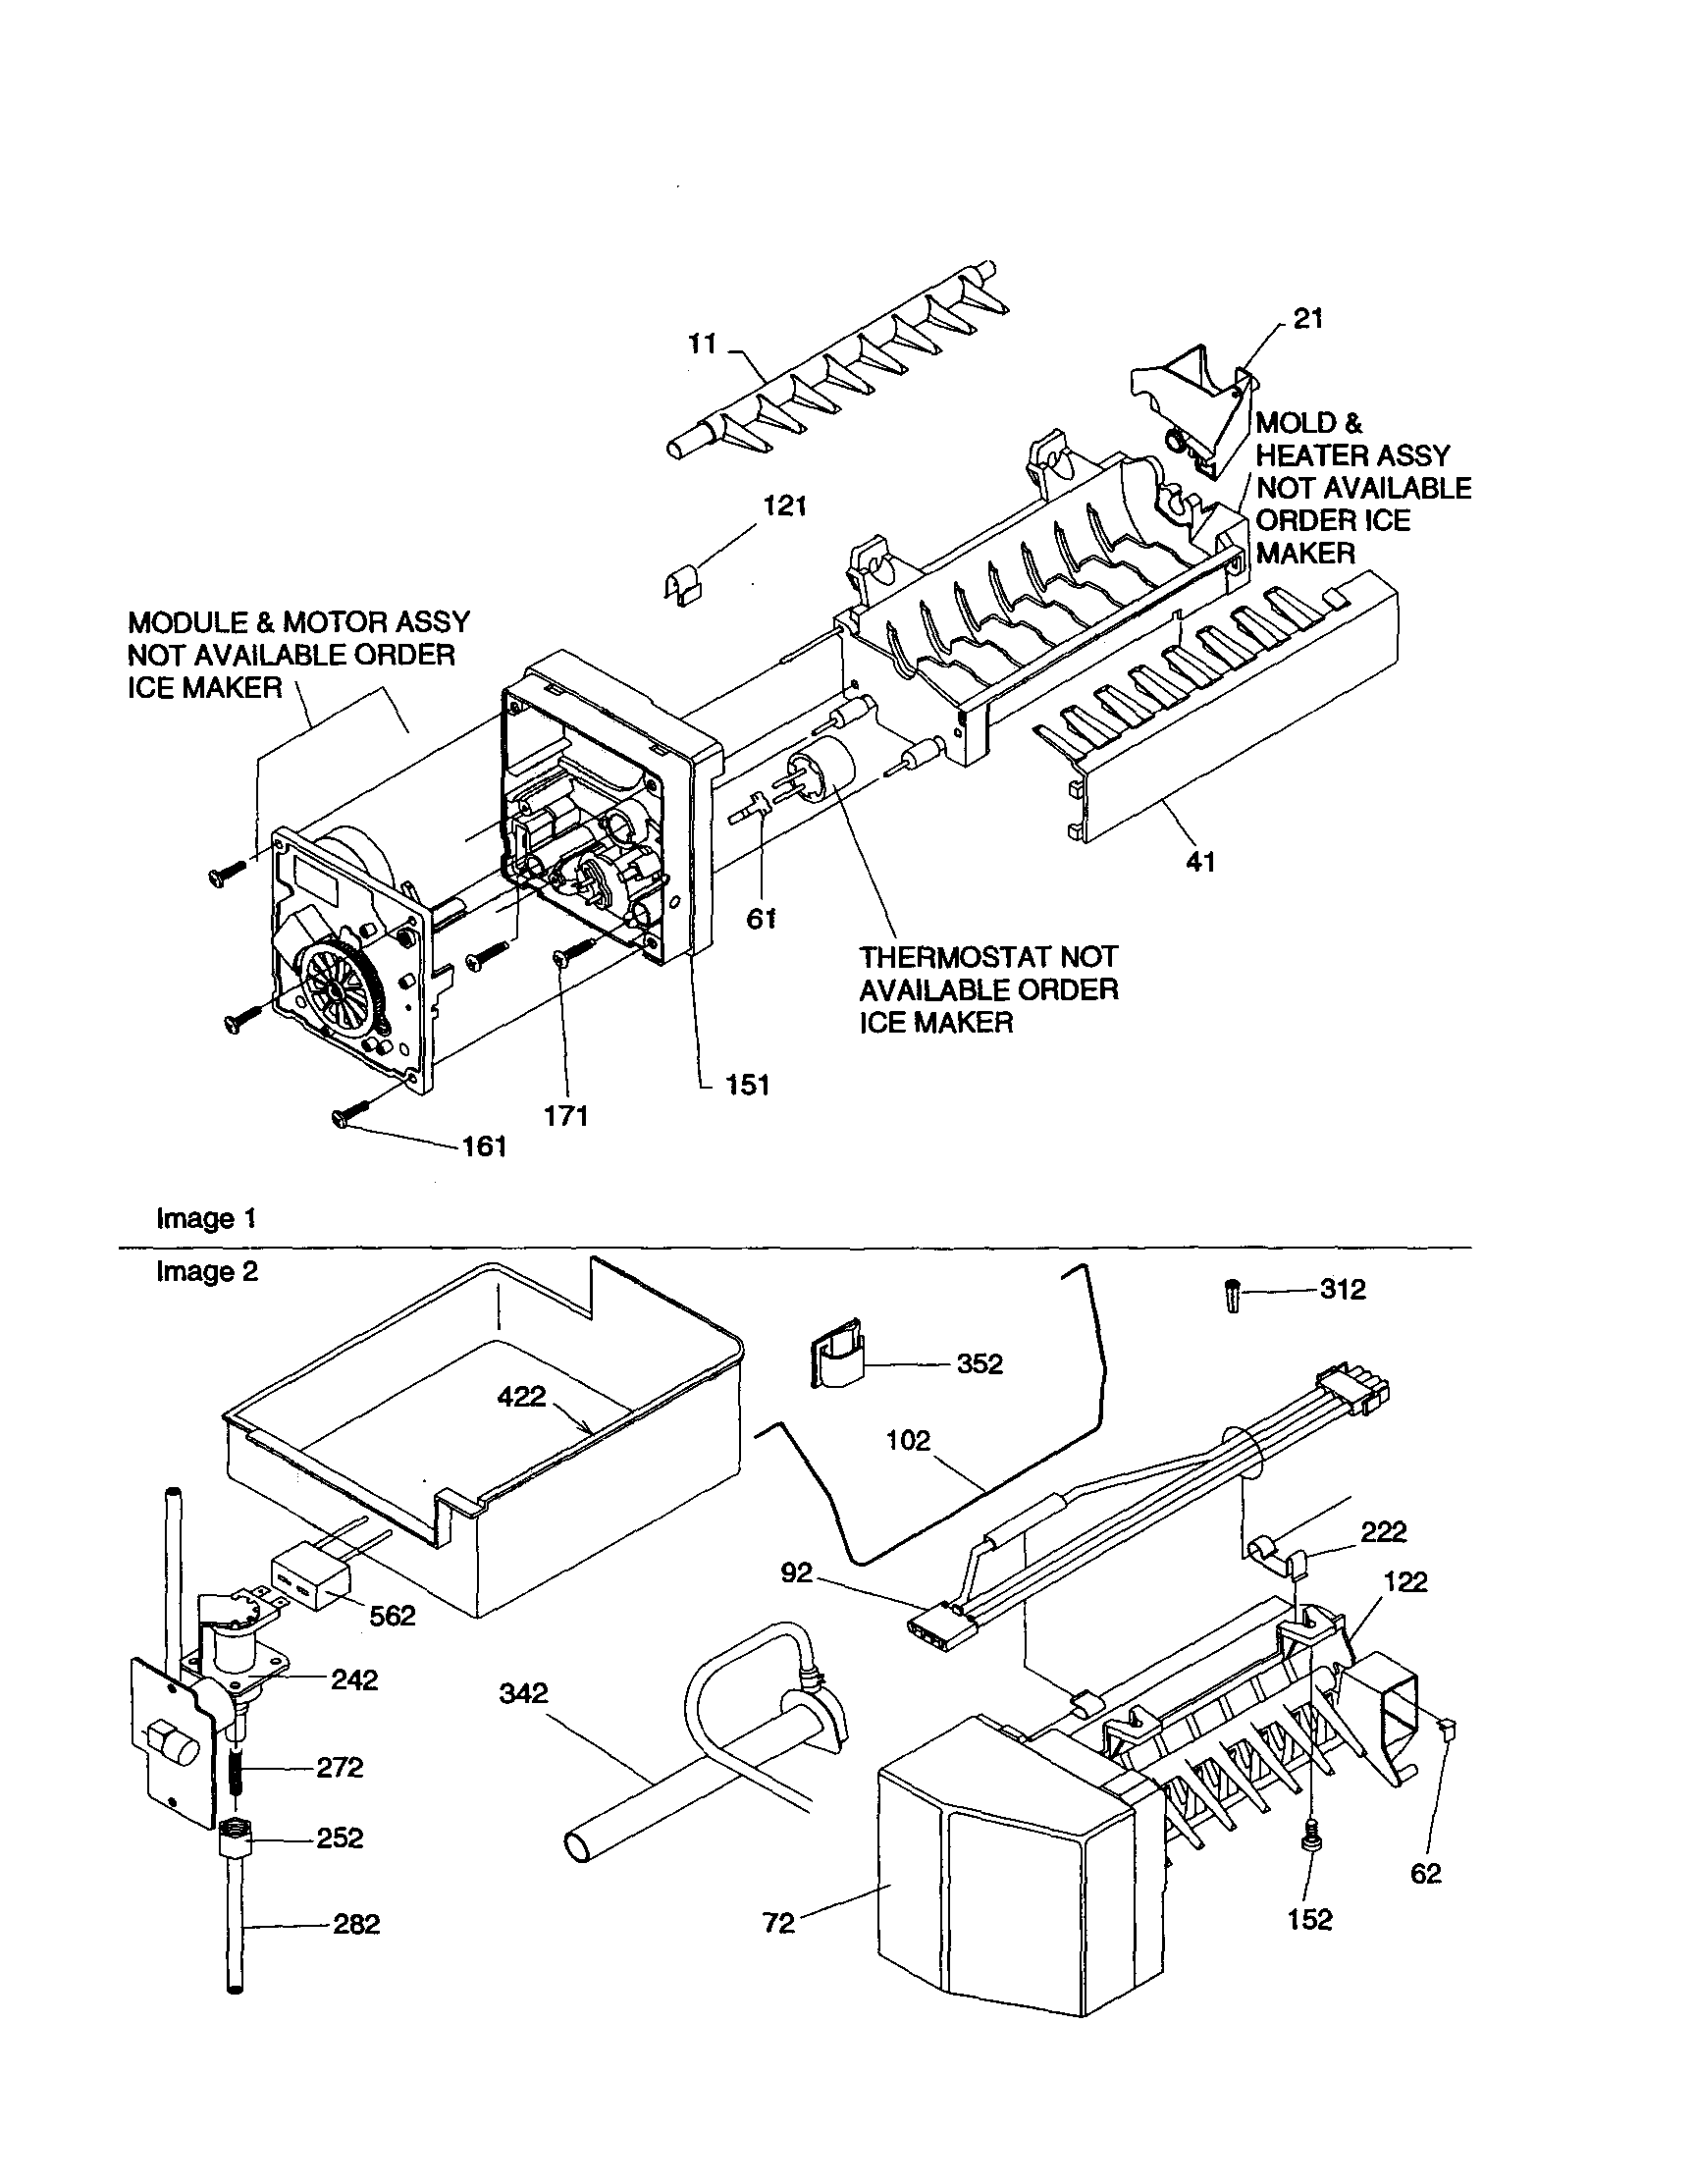 ice maker diagram trailer connector wiring 7 way assembly and parts list for model